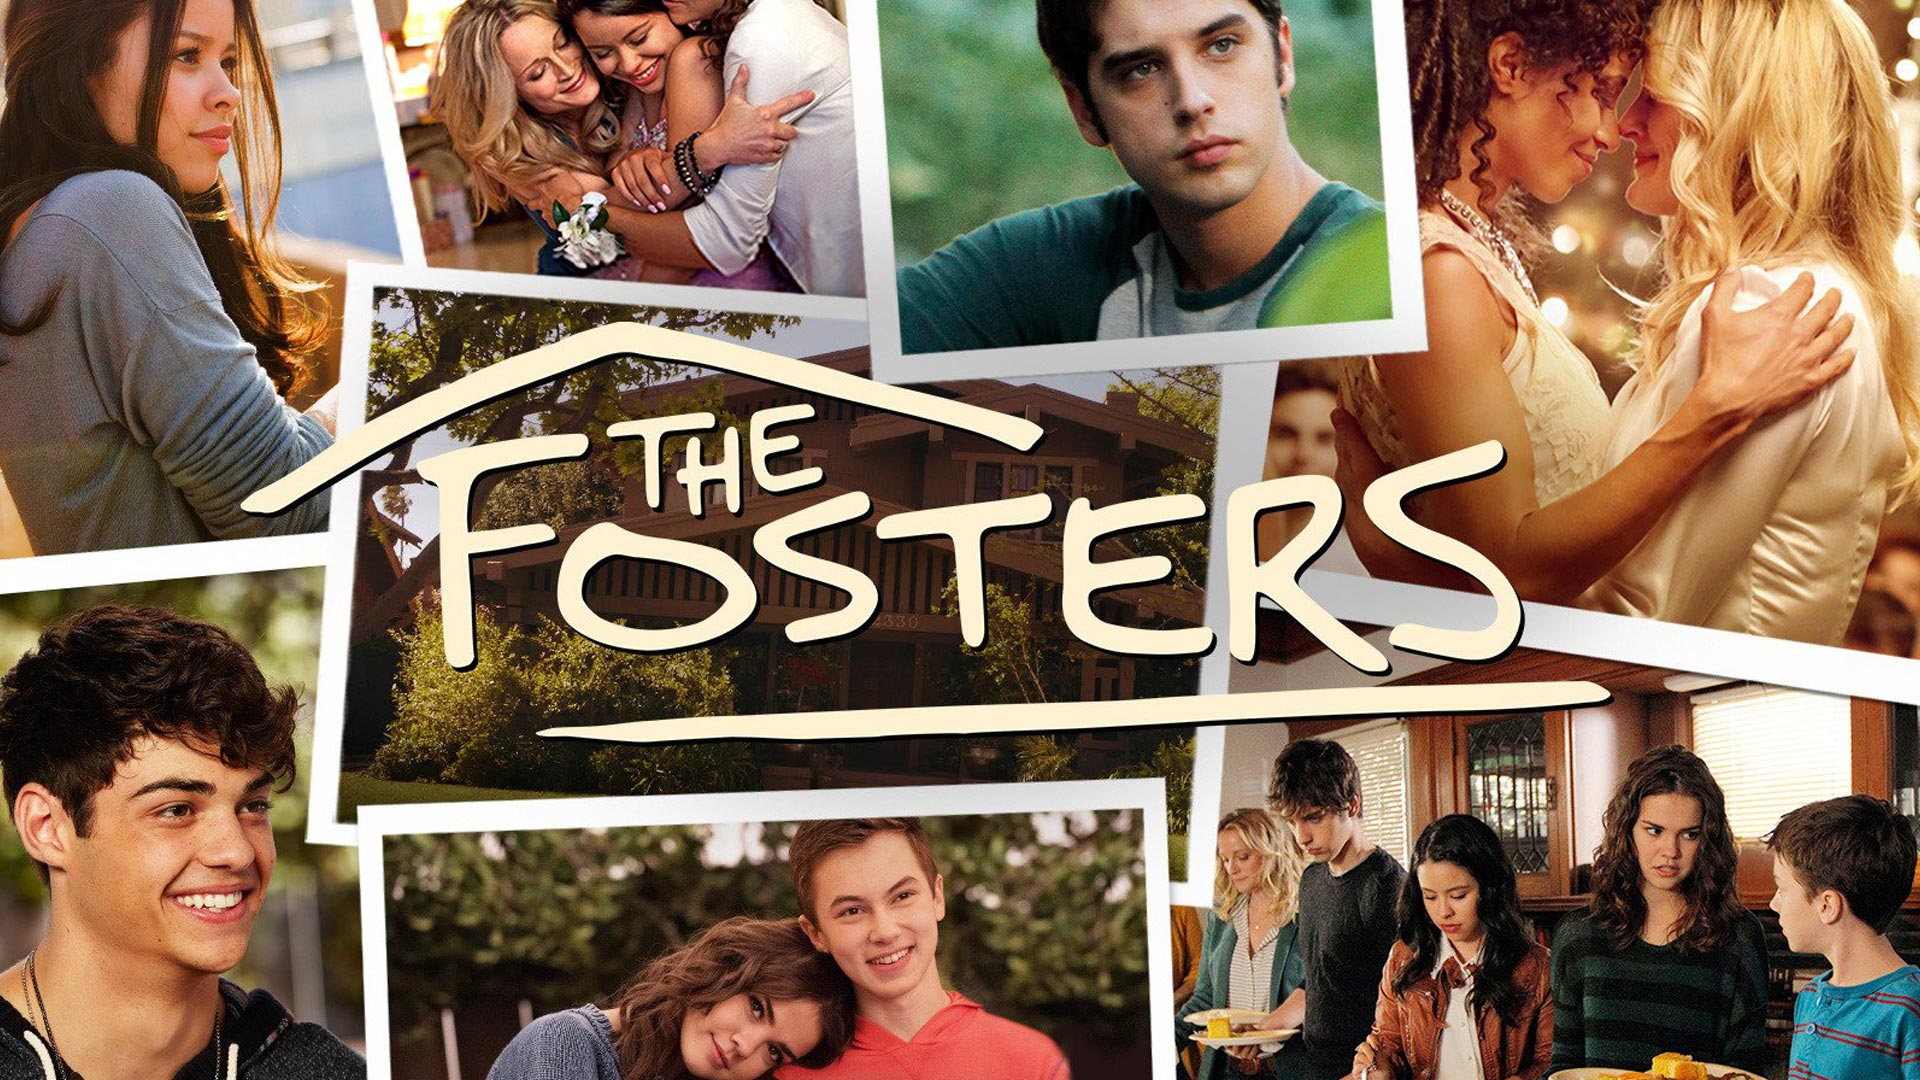 The Fosters Season 1